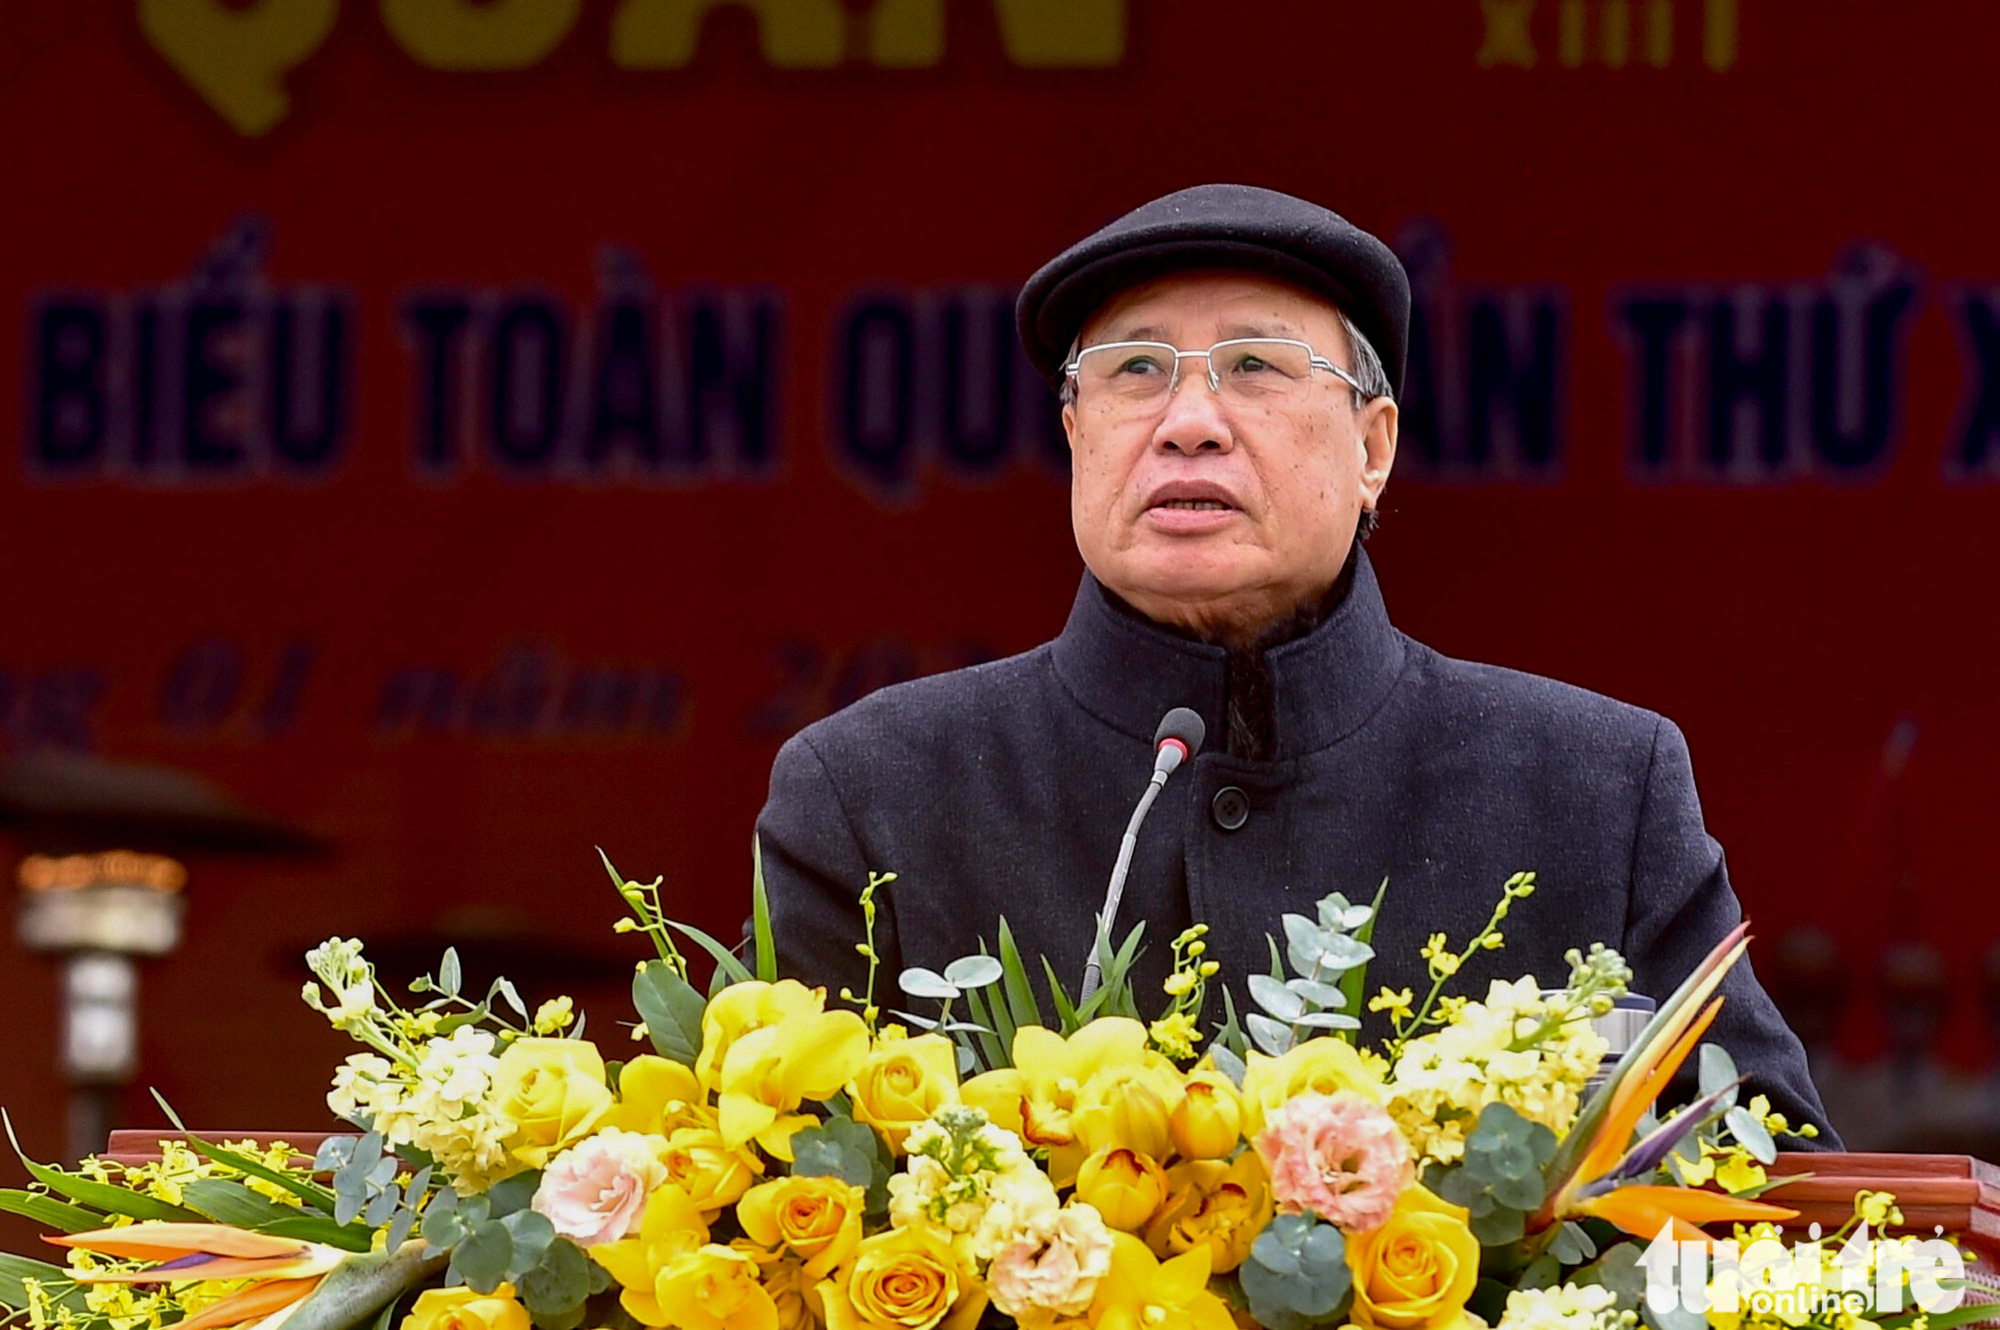 Tran Quoc Vuong, Politburo member and head of the congress's organizing sub-committee, speaks at the ceremony in Hanoi, January 10, 2021. Photo: Quang Minh / Tuoi Tre